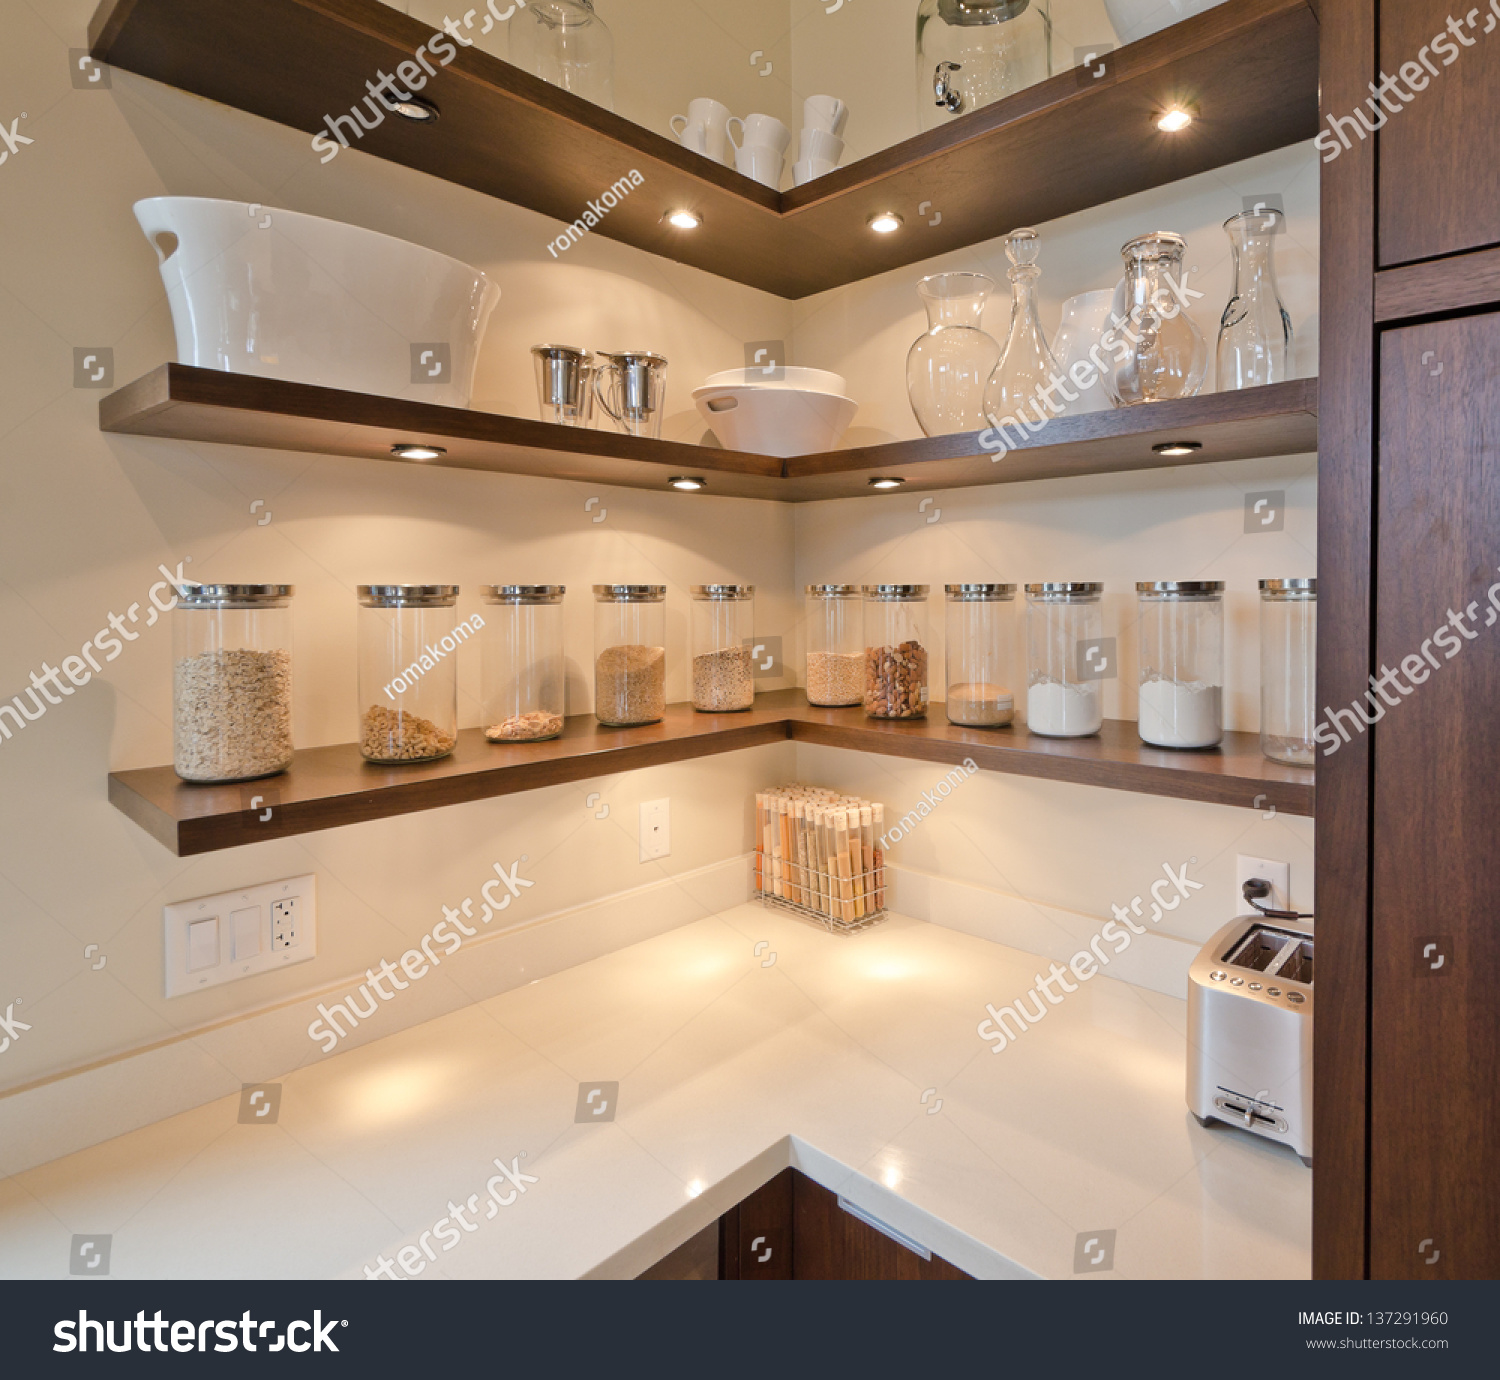 Modern Kitchen Shelf Design: Fragment Luxury Modern Kitchen Some Shelves Stock Photo